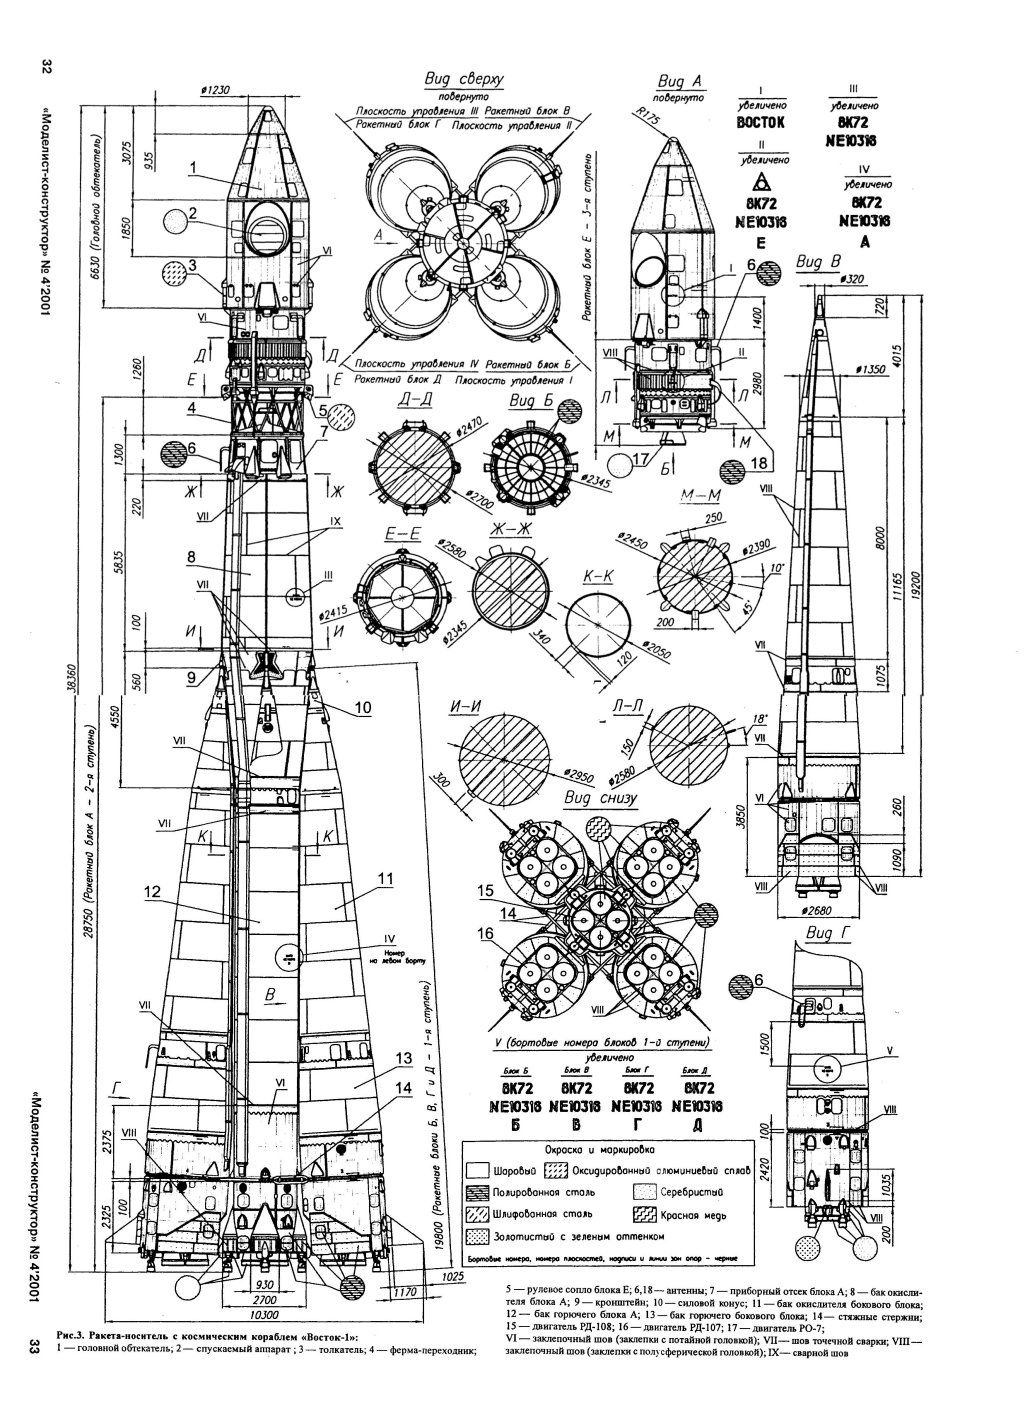 Vostok Technical Drawing